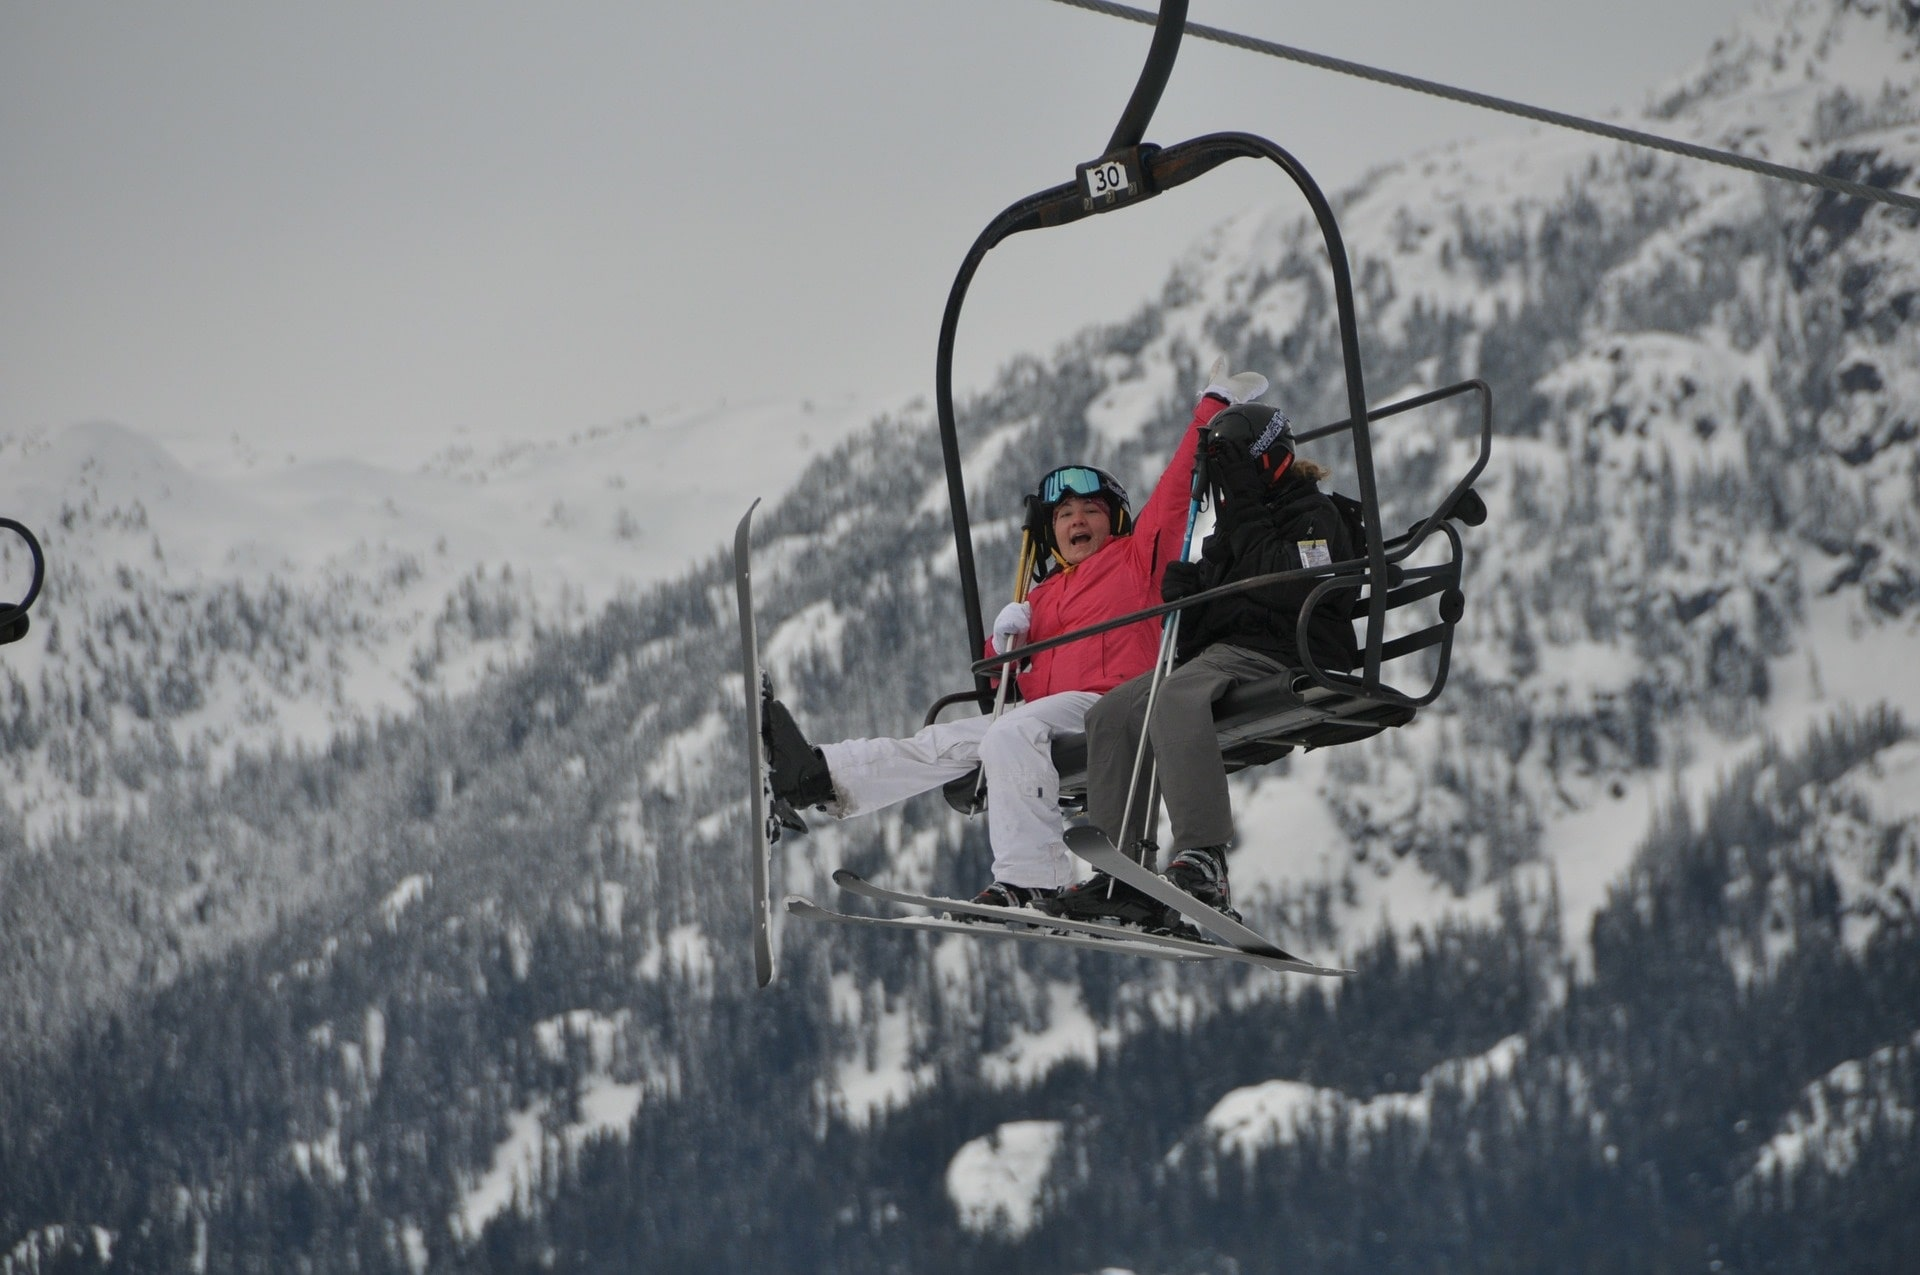 Whistler Blackcomb jobs. Working Holiday in Canada